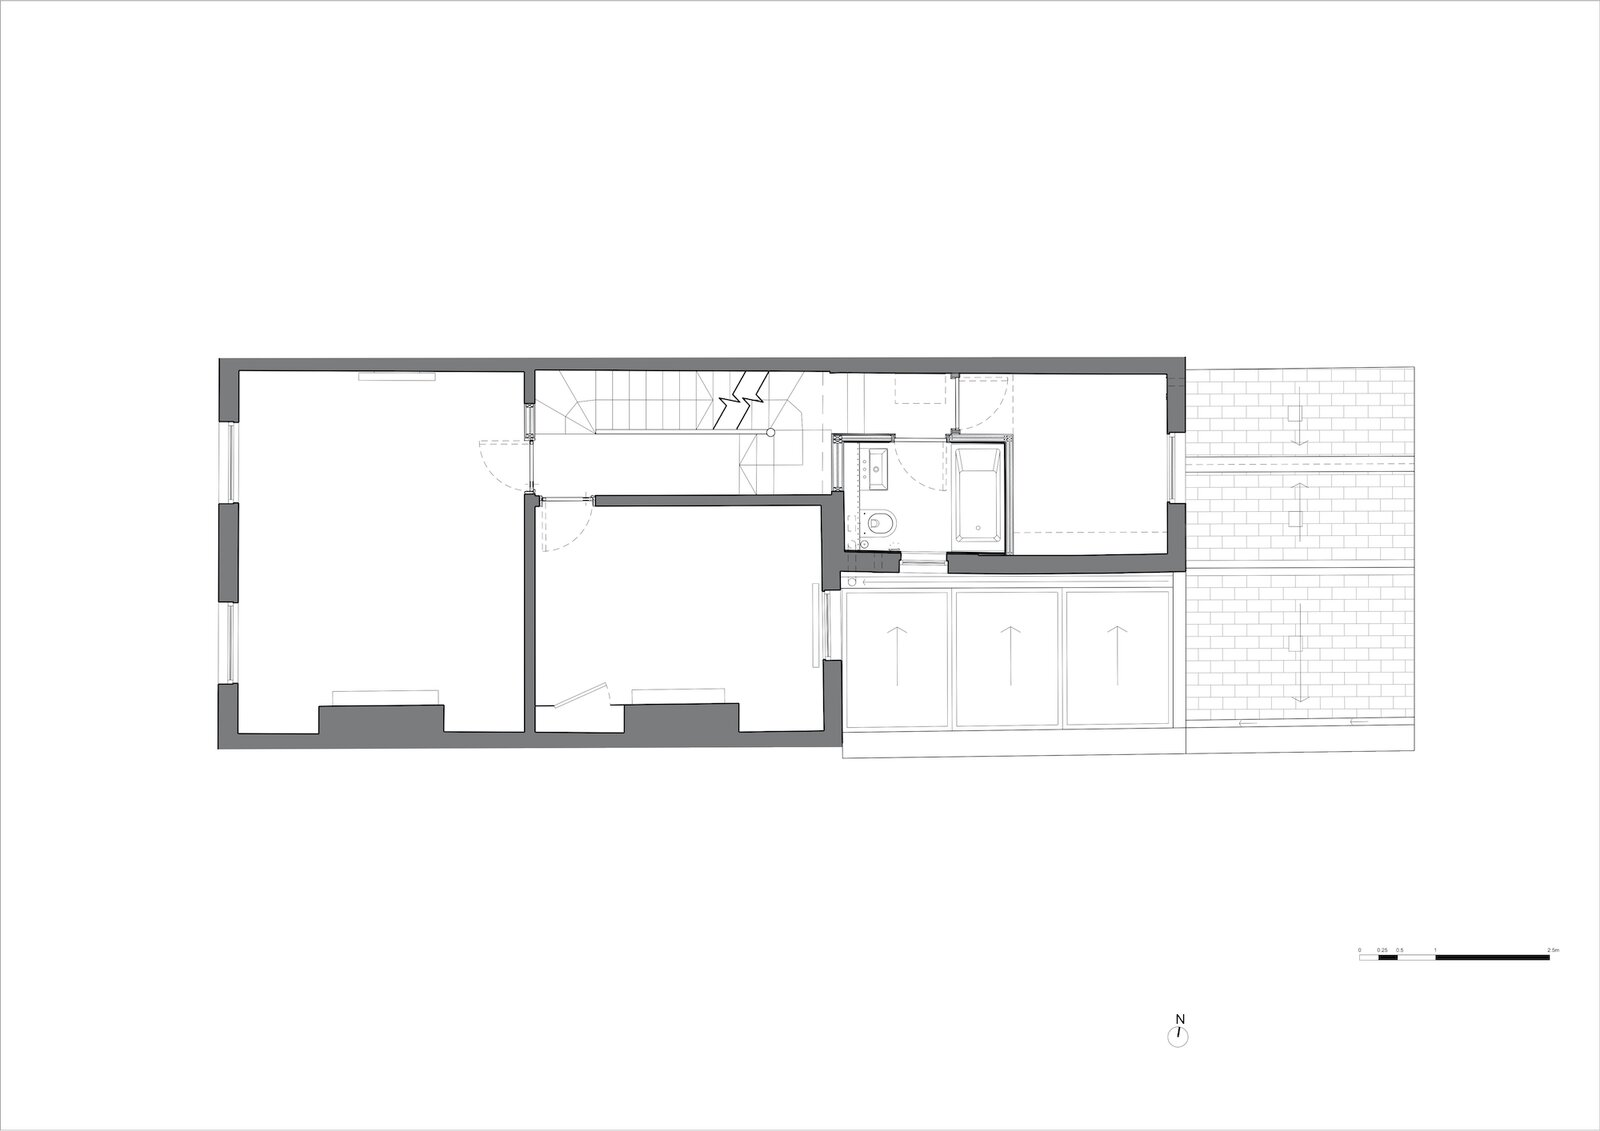 First floor plan of Zigzag Roof House by 4 S Architecture after the extension.